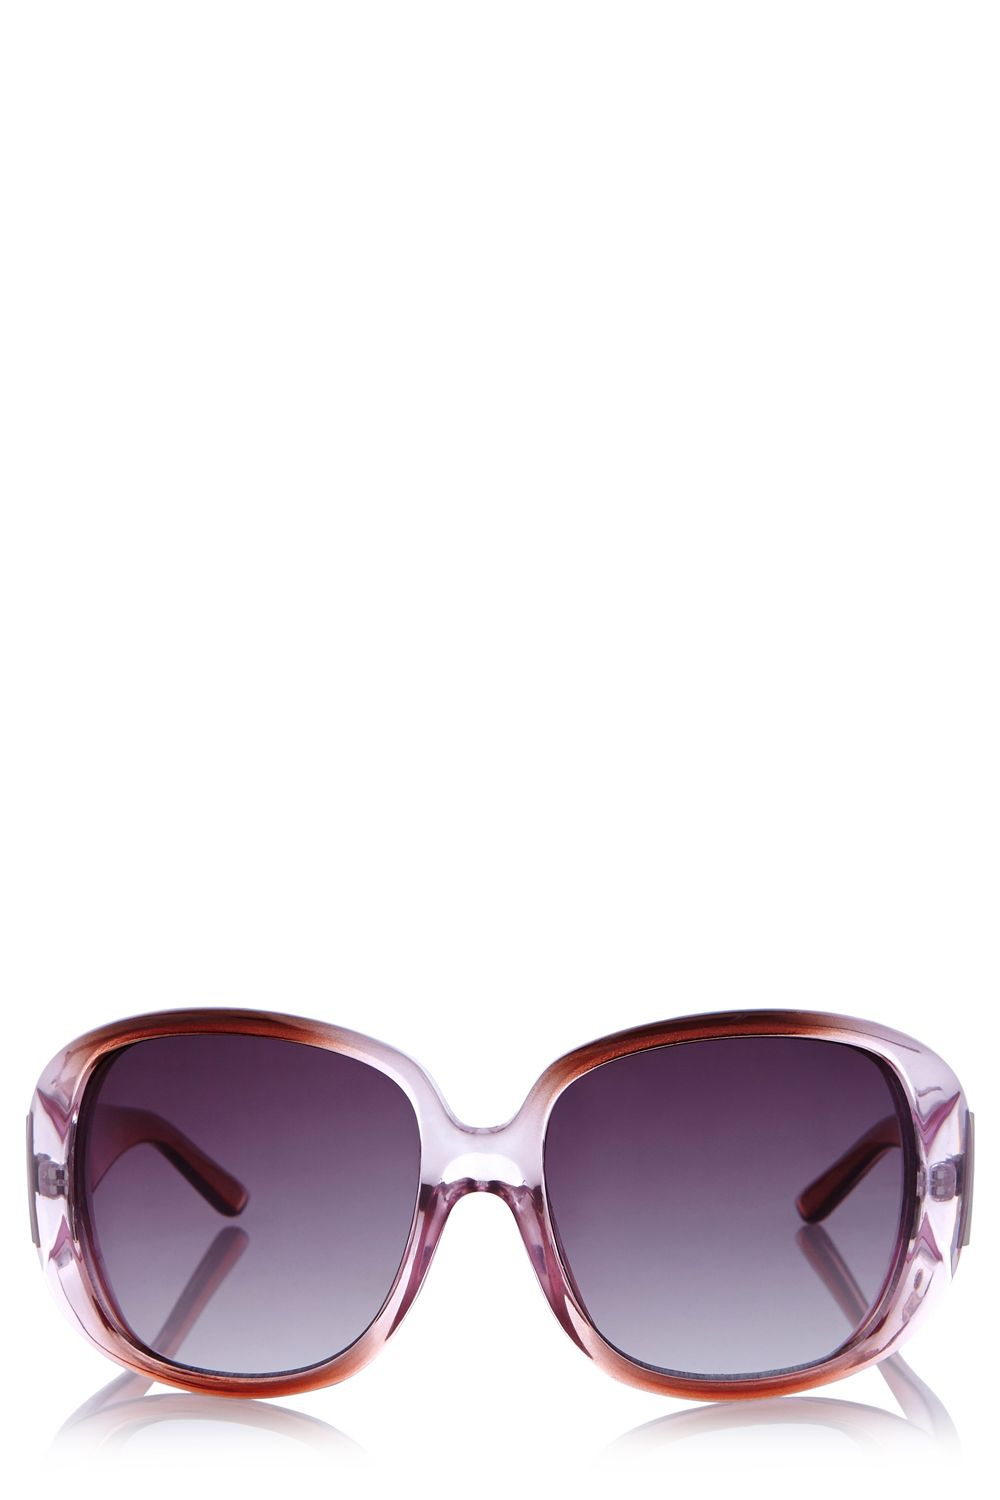 Medium round plastic sunglasses